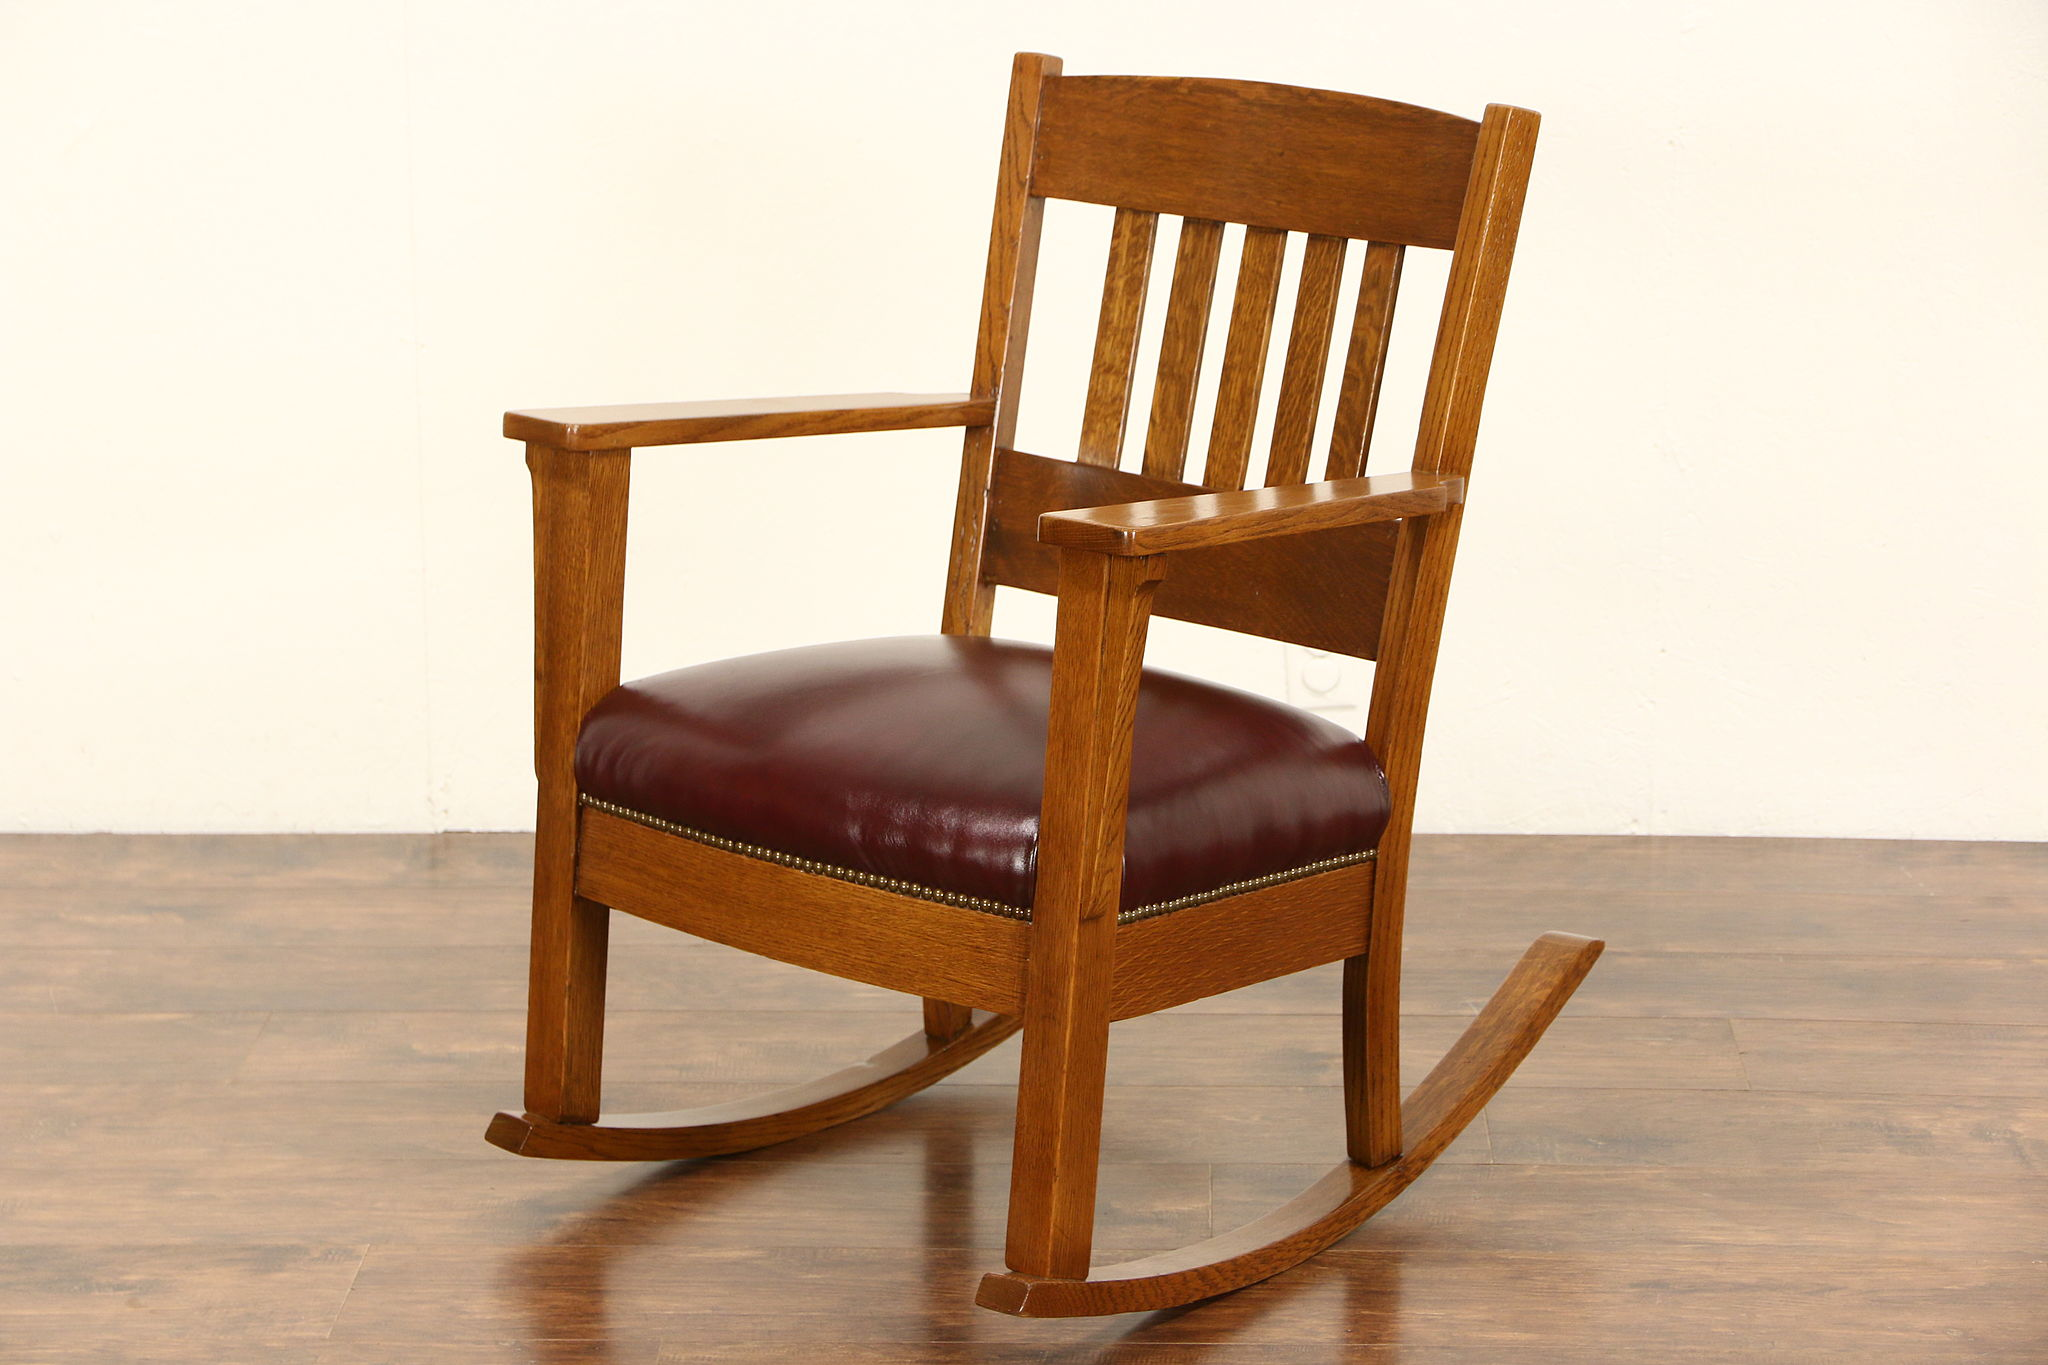 Rocker Arts u0026 Crafts Mission Oak Antique 1905 Rocking Chair New Leather & SOLD - Rocker Arts u0026 Crafts Mission Oak Antique 1905 Rocking Chair ...